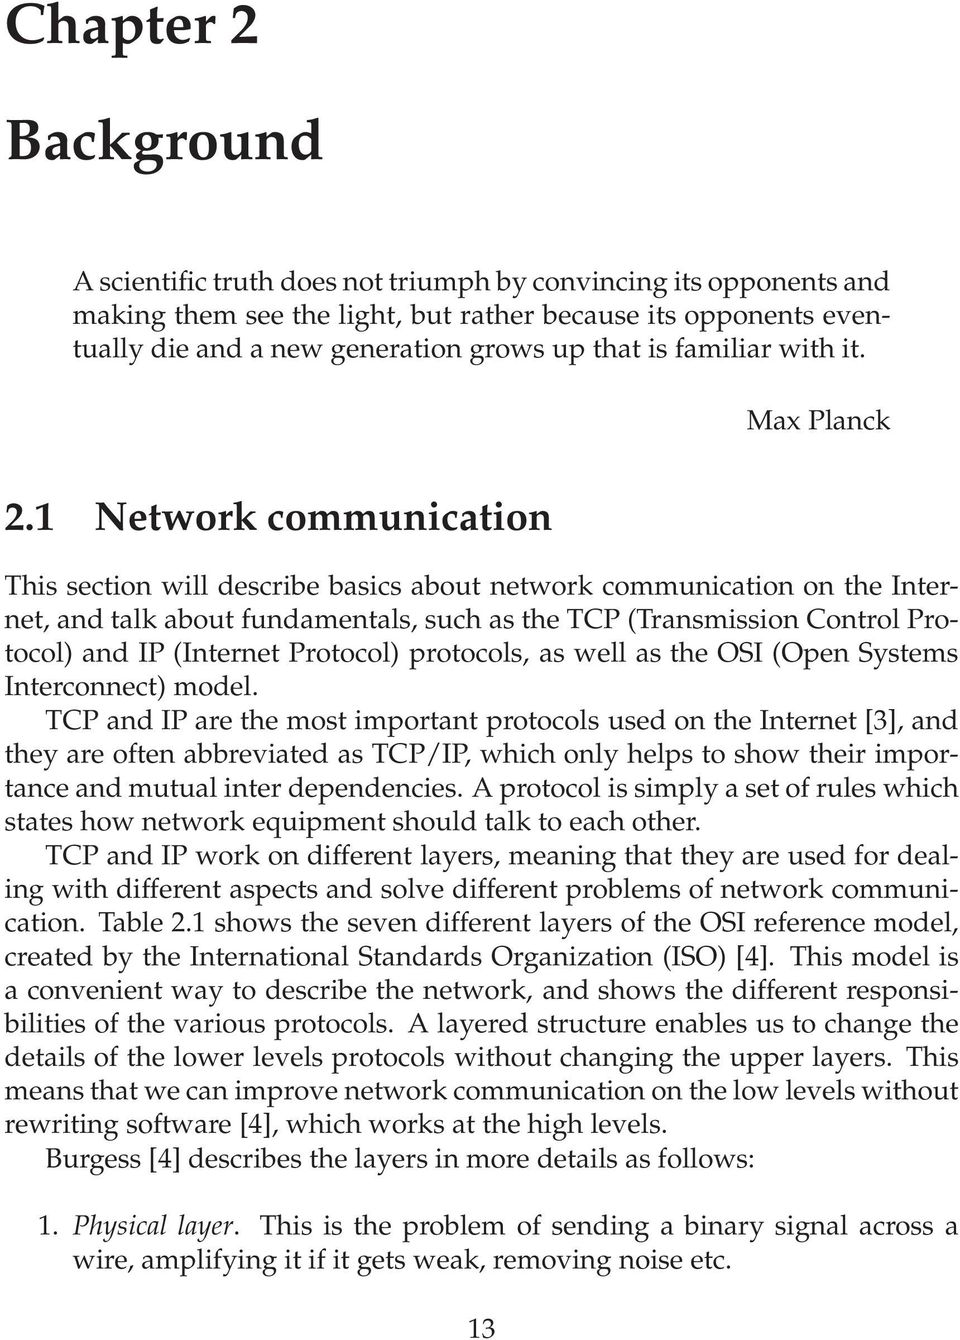 1 Network communication This section will describe basics about network communication on the Internet, and talk about fundamentals, such as the TCP (Transmission Control Protocol) and IP (Internet